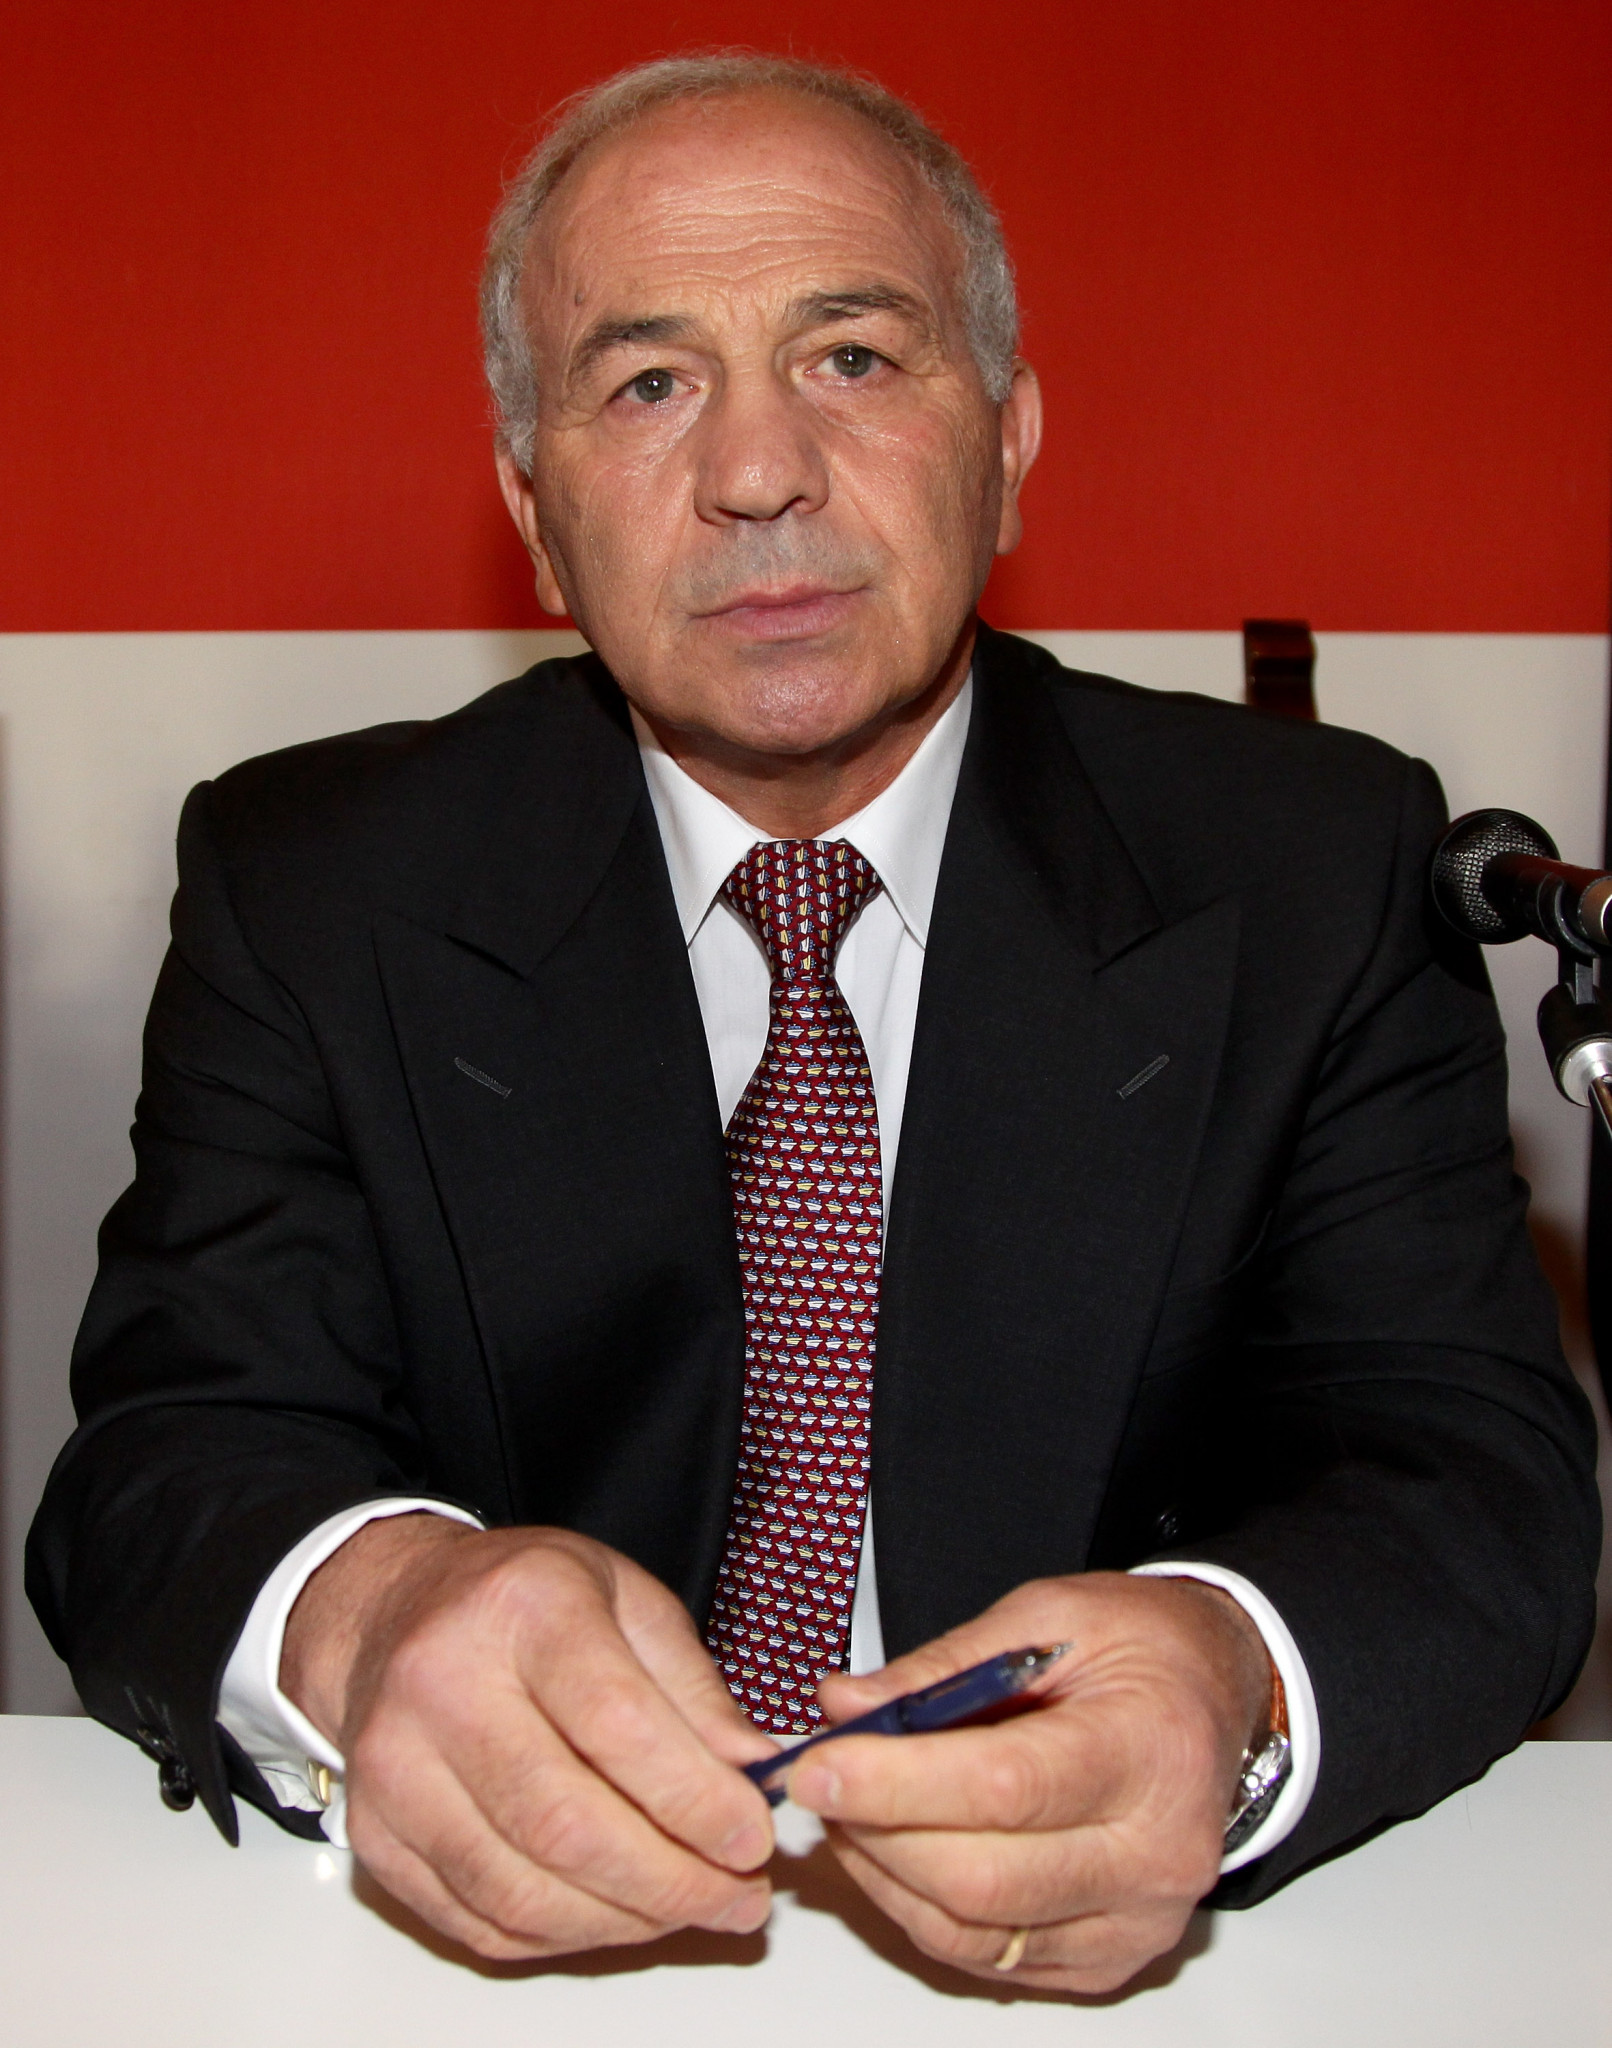 Franco Falcinelli is heading an AIBA Executive Committee meeting in Rome ©Getty Images